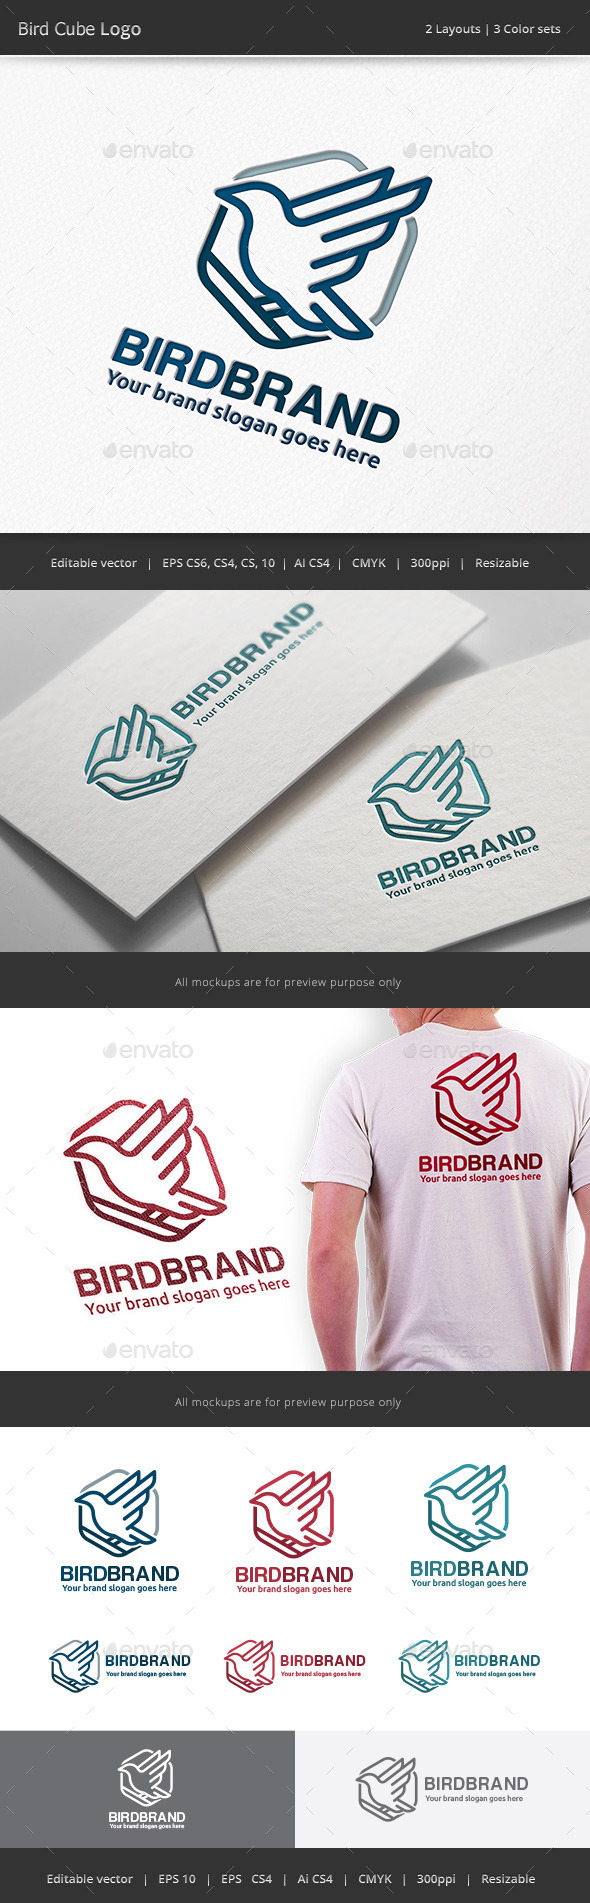 Bird Cube Logo - Animals Logo Templates